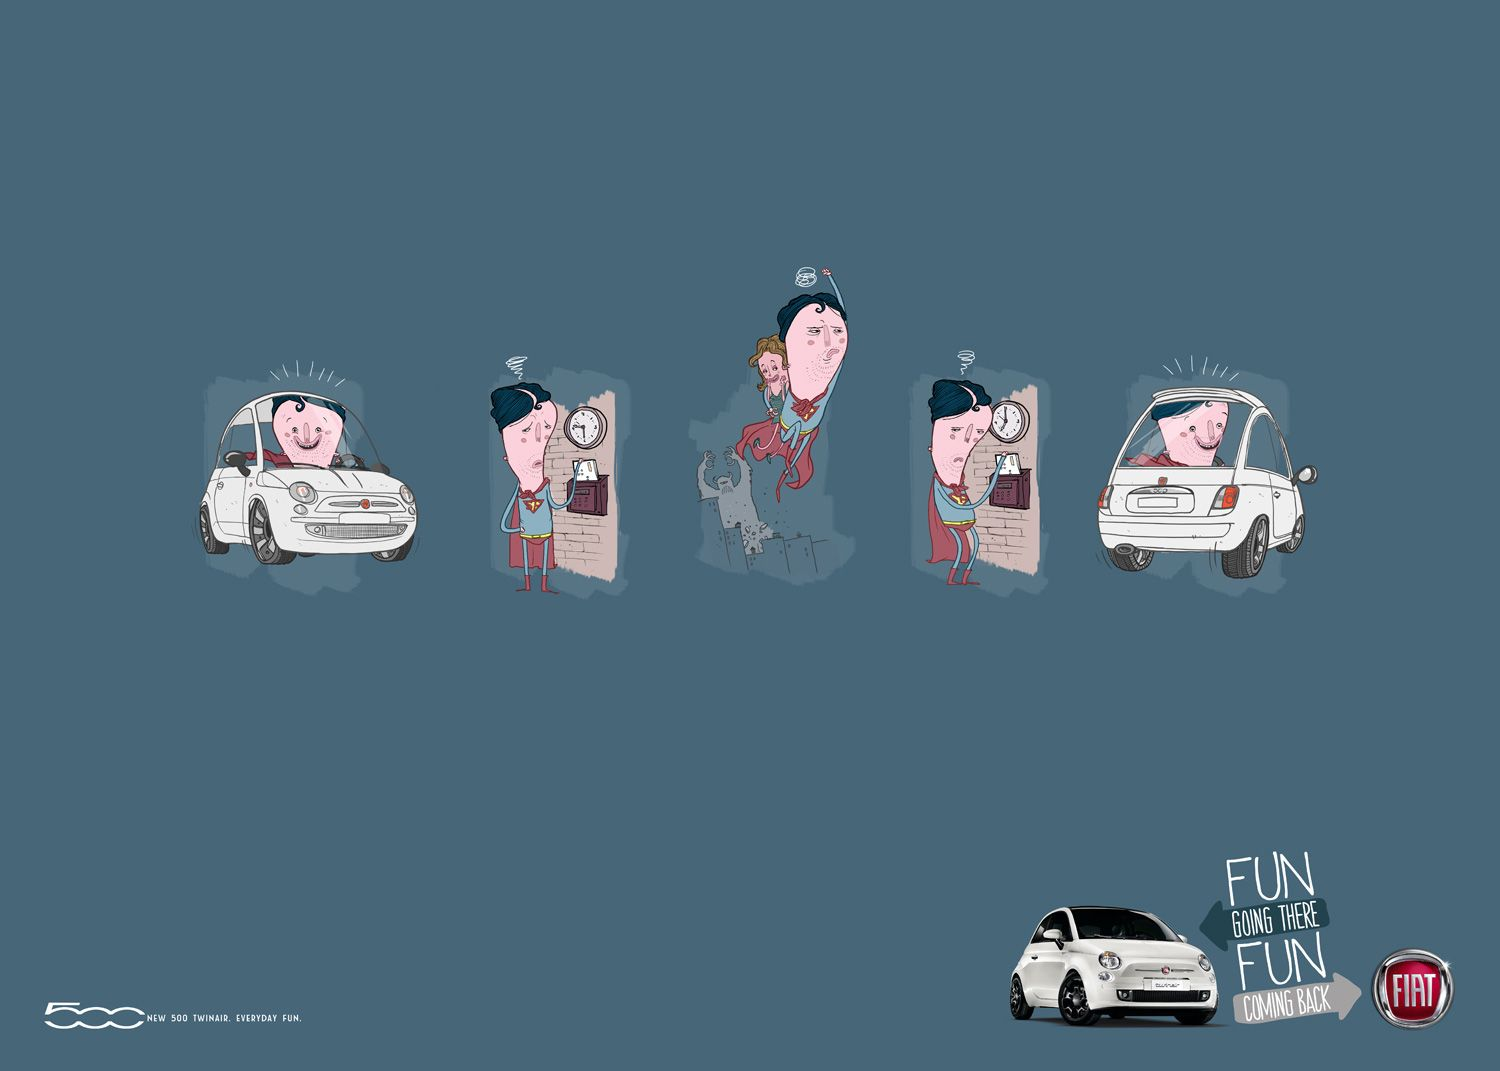 Fiat 500, Fun going there, Fun coming back (Leo Burnett Iberia, Spain)